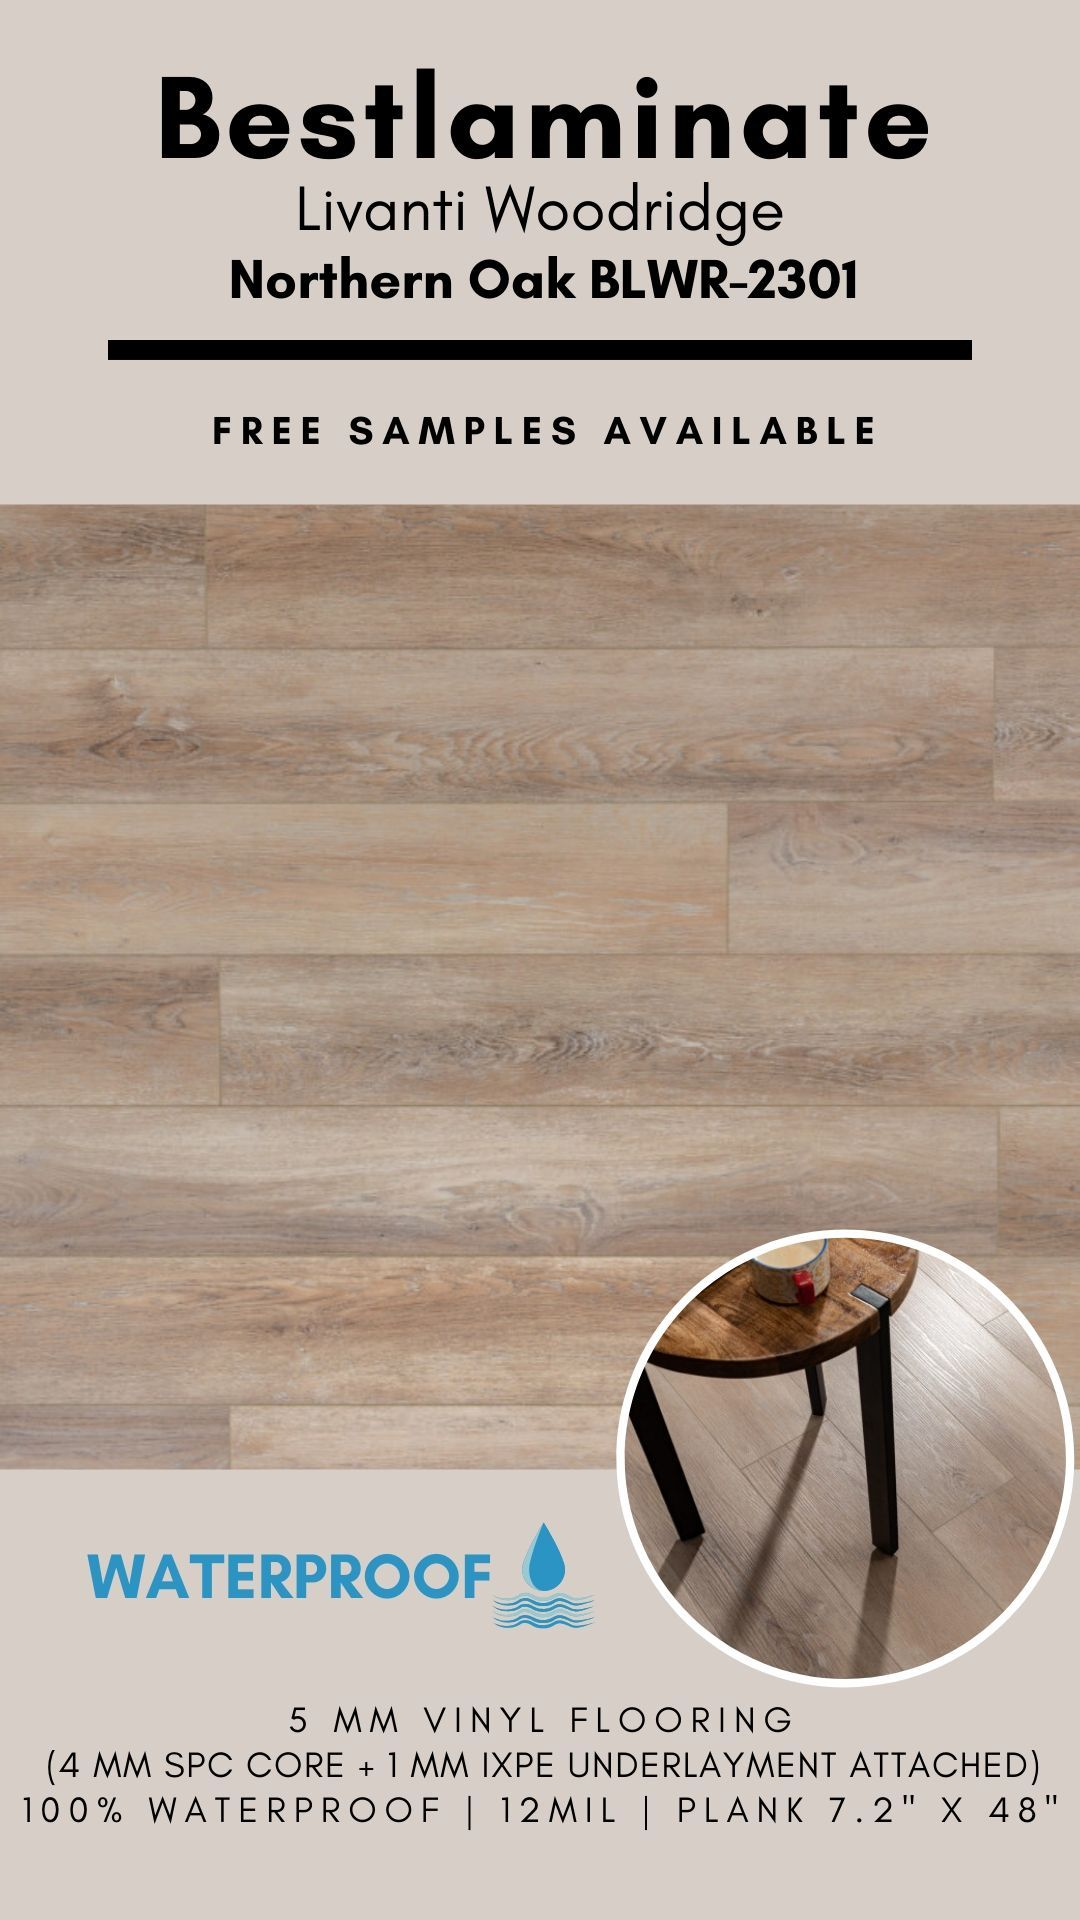 Bestlaminate Livanti Woodridge Northern Oak Blwr 2301 Luxury Spc Vinyl Flooring In 2020 Vinyl Flooring Flooring Luxury Vinyl Plank Flooring